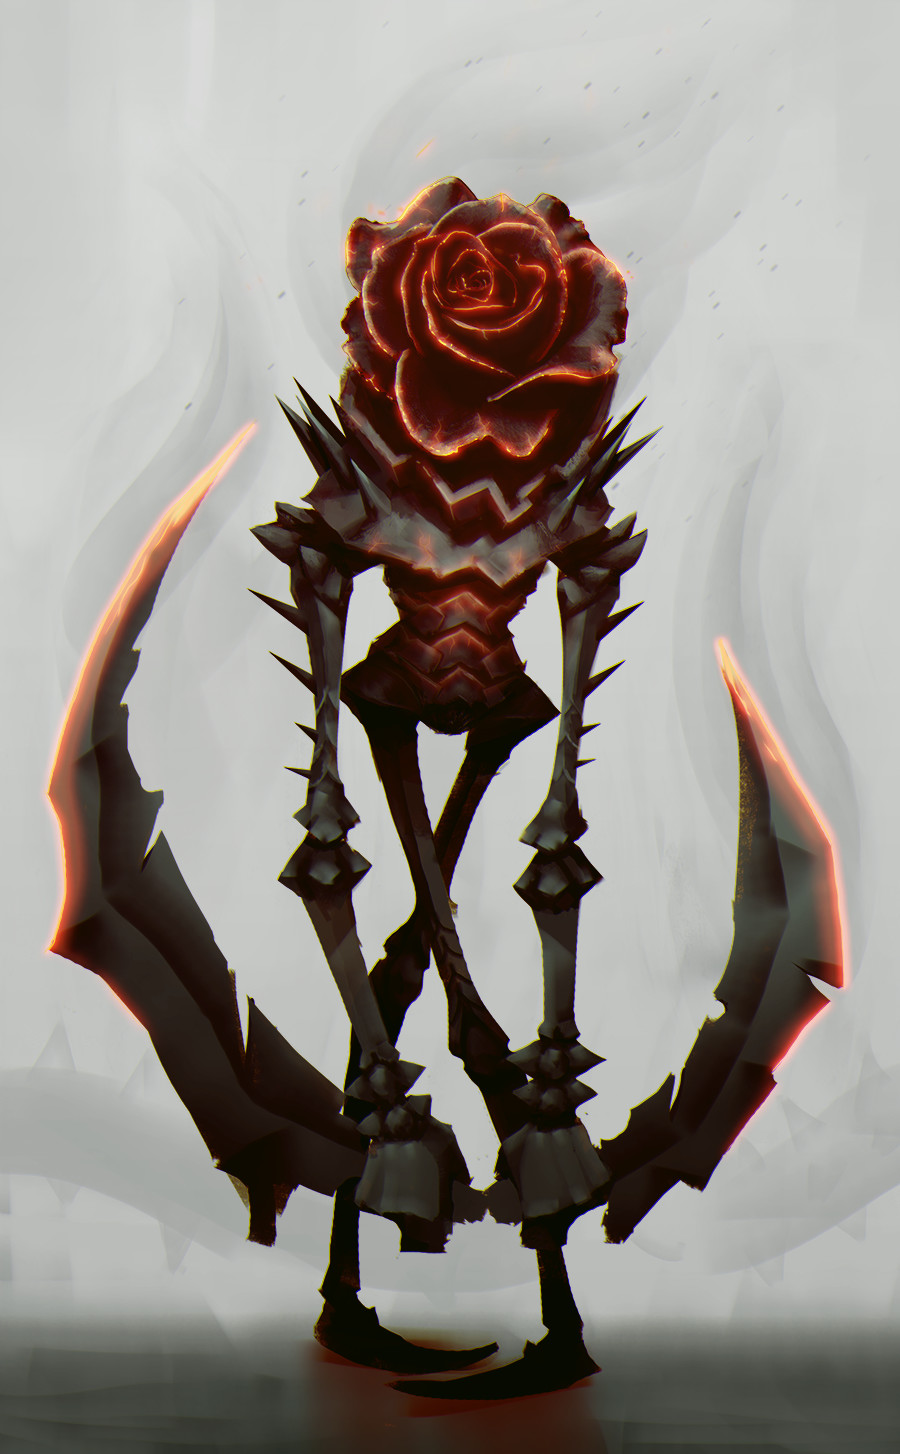 Alexis rives rose demon final